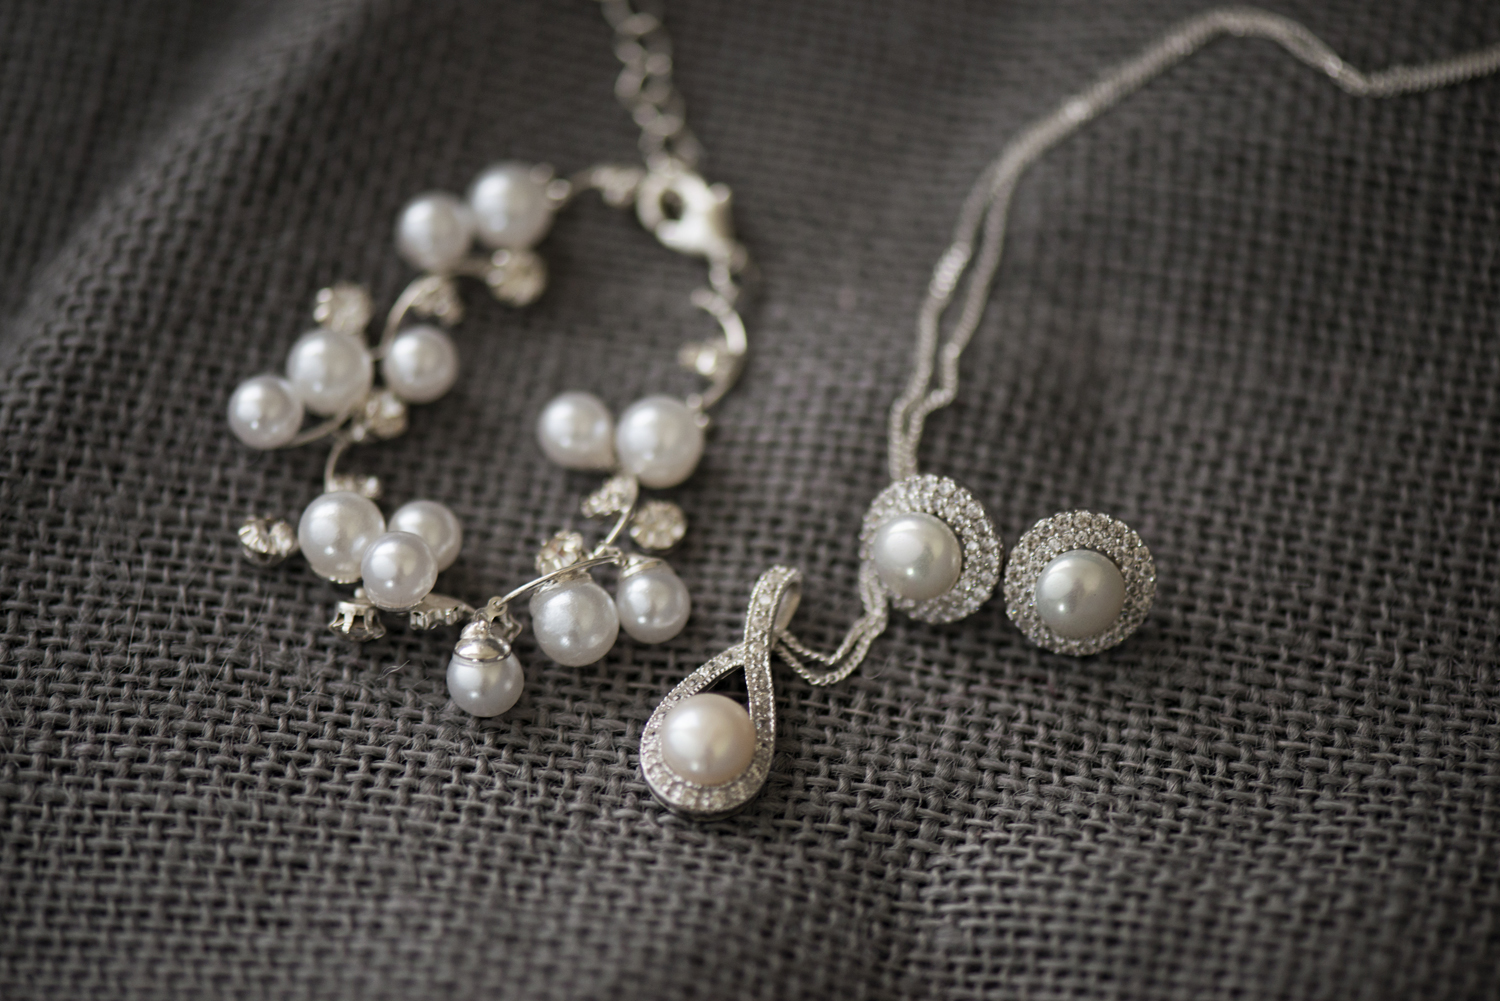 Pearl and diamond bridal jewelry on gray burlap